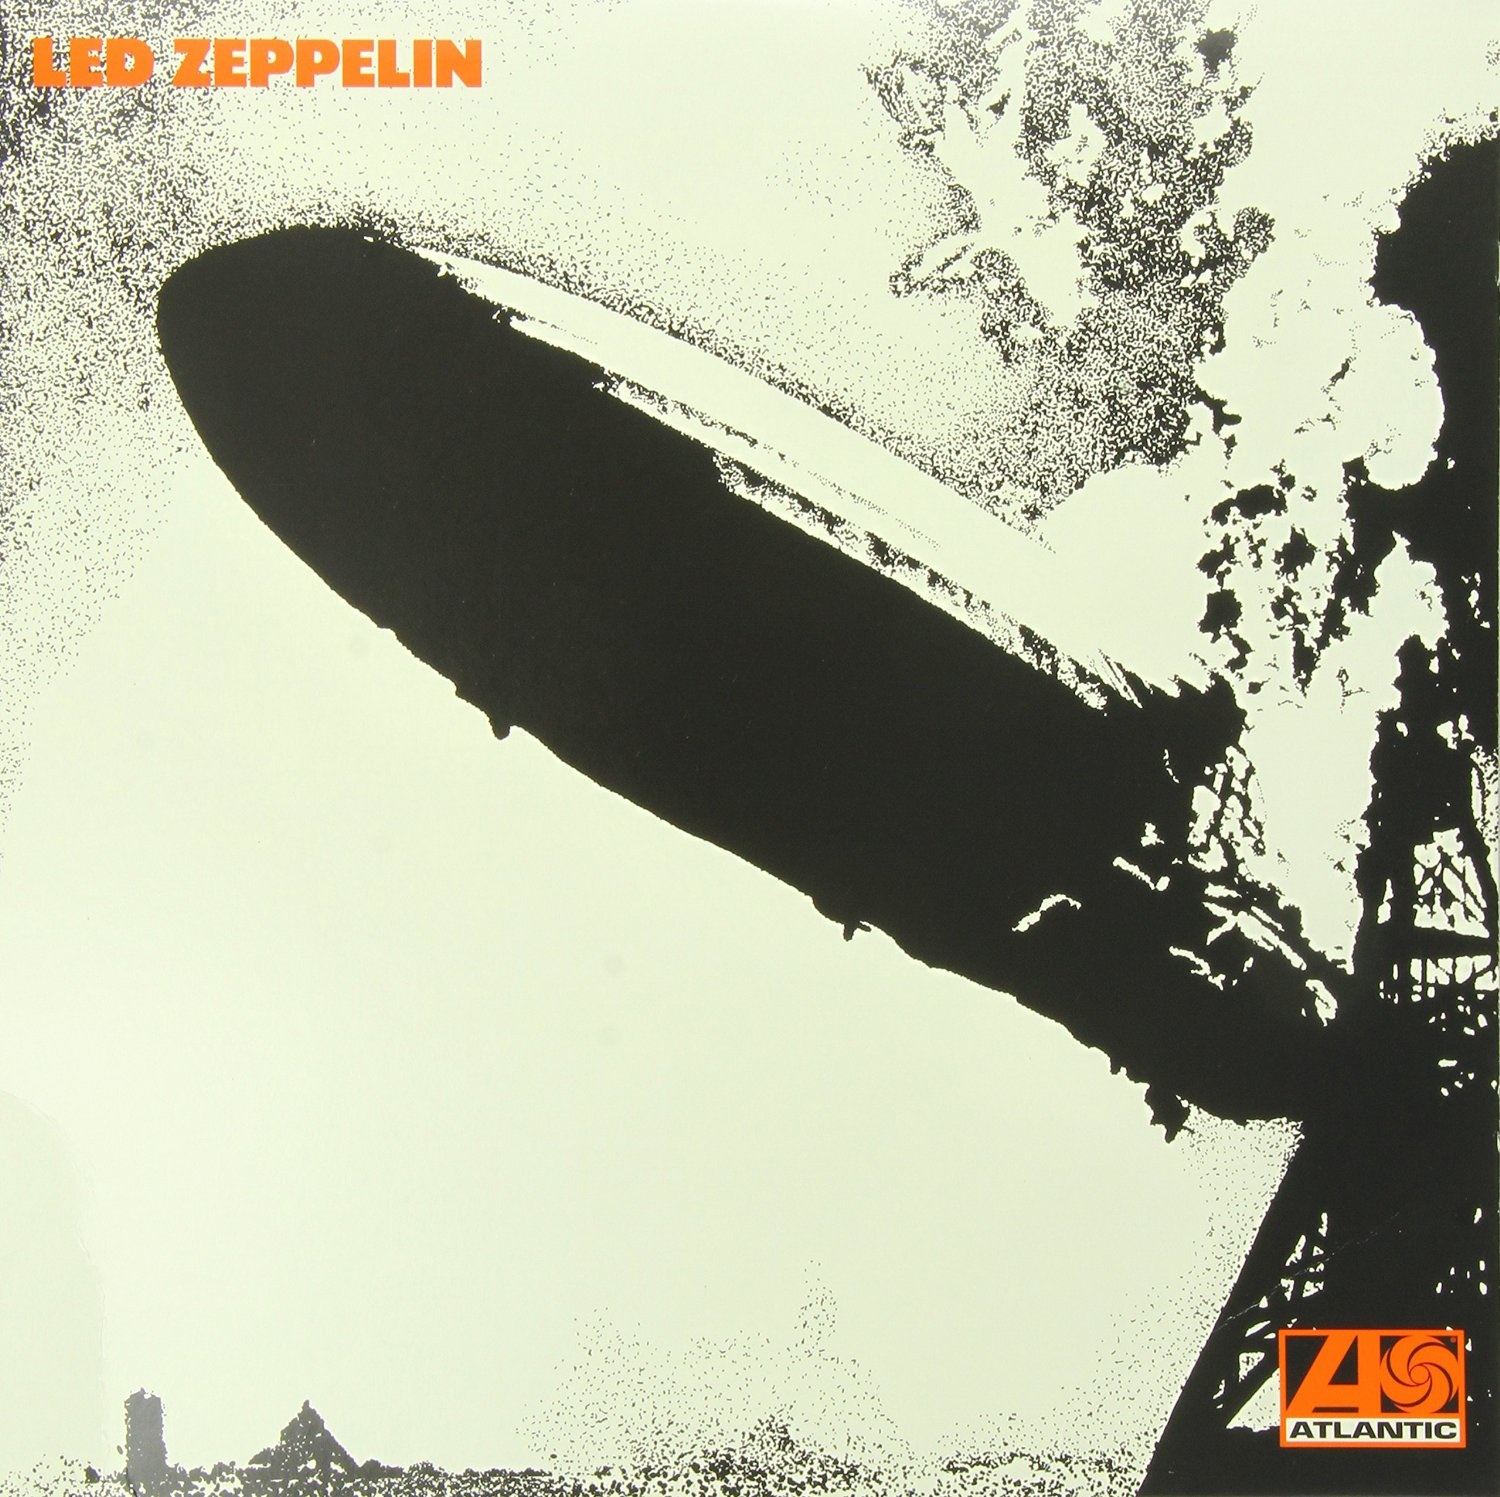 Led Zeppelin - Led Zeppelin I. Remastered Original (LP) brand new high sensitivity mini portable folding handheld metal detector ts80 guard security scanner sound light vibration alarm